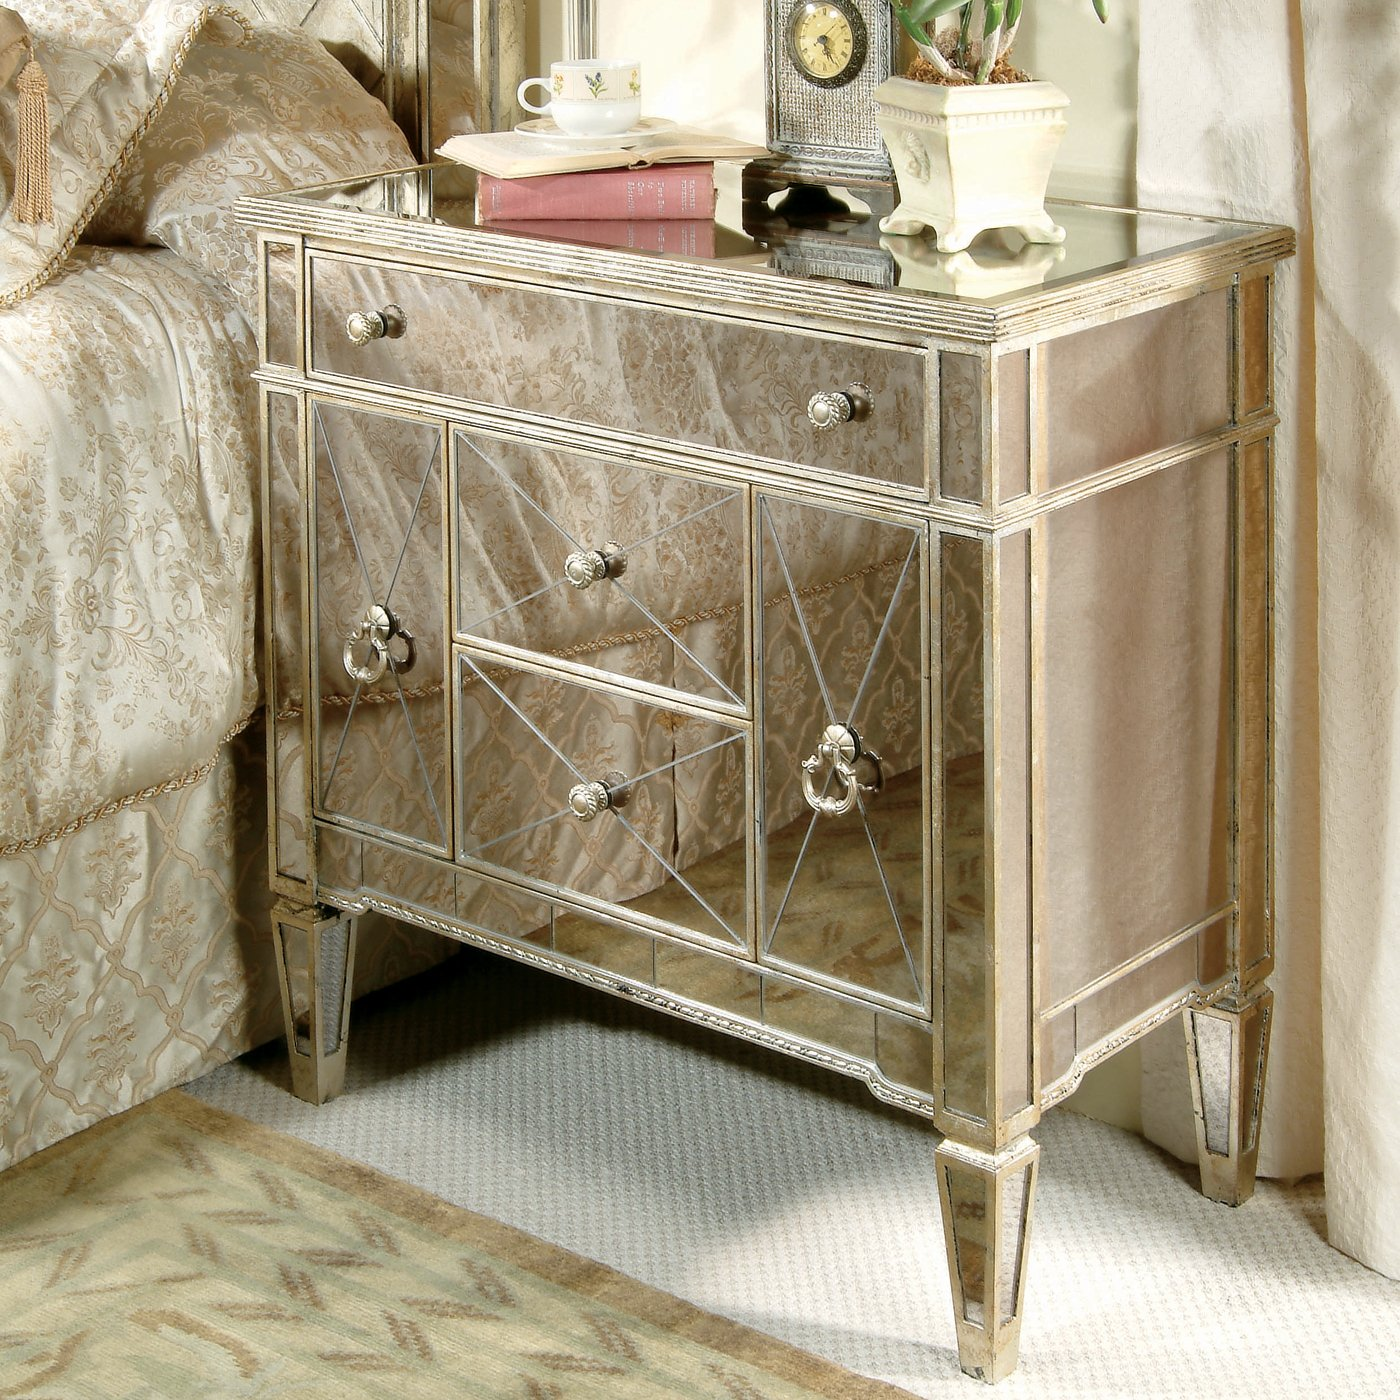 bore perfect bedroom awesome mirrored nightstand design with beds and